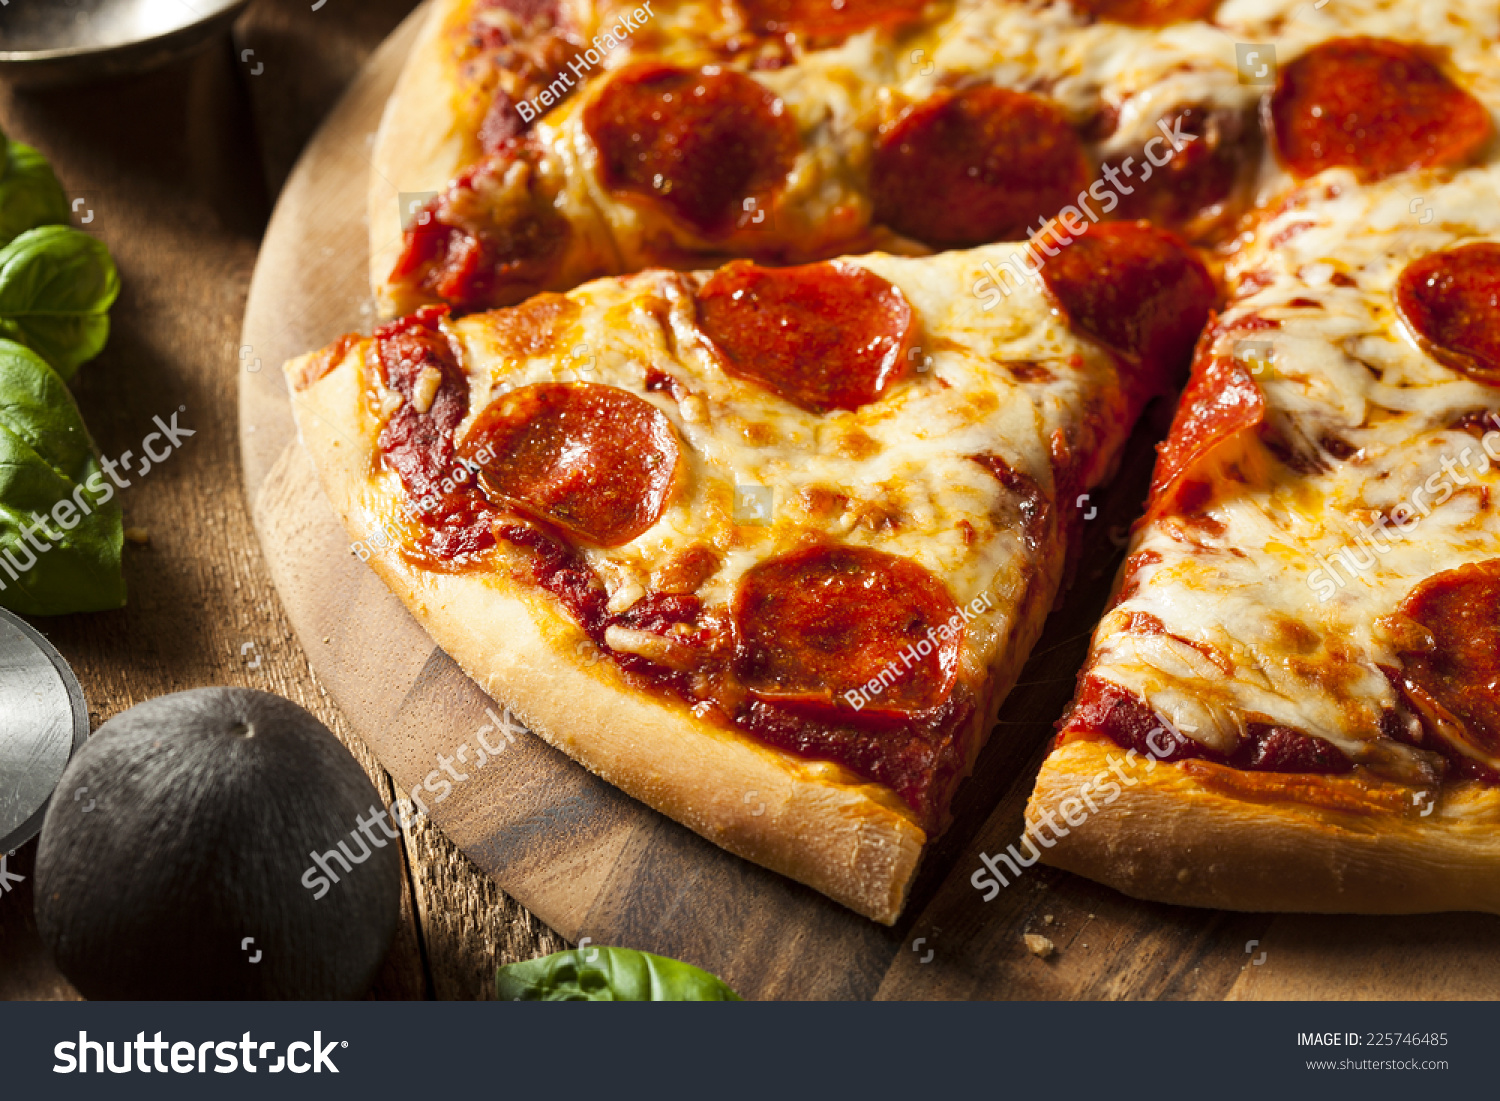 hot homemade pepperoni pizza ready to eat stock photo 225746485 shutterstock. Black Bedroom Furniture Sets. Home Design Ideas